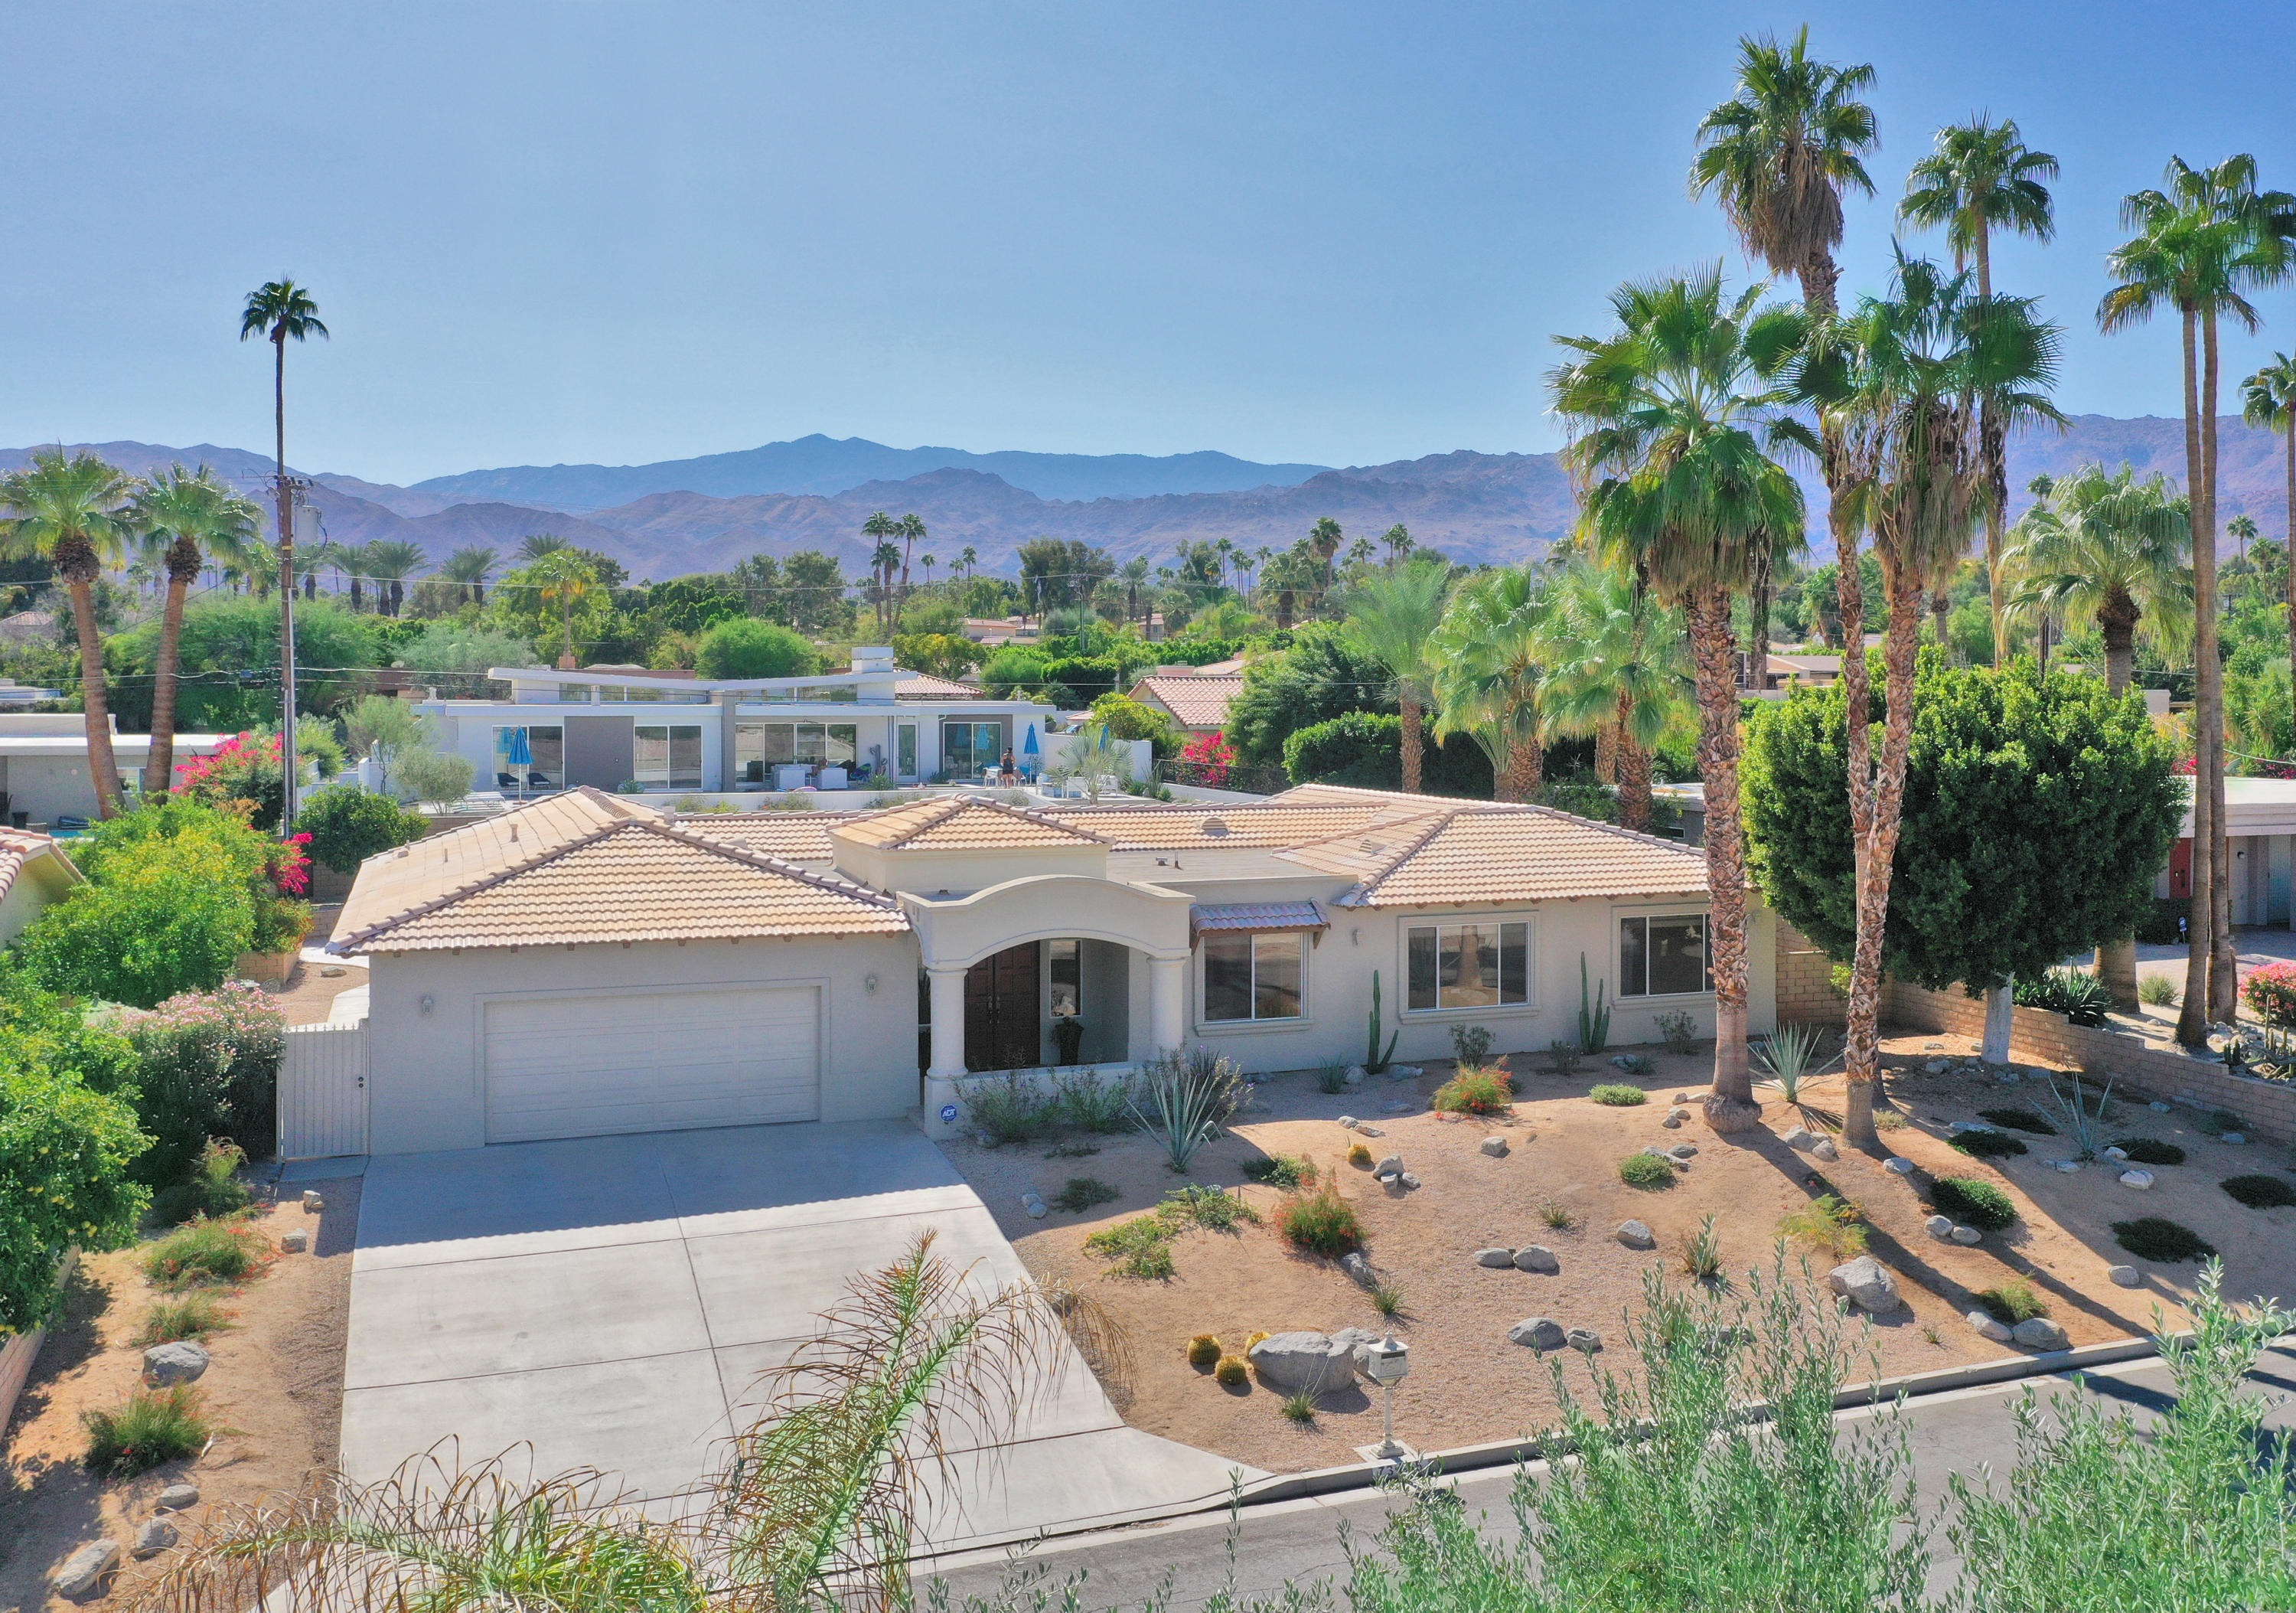 A wonderful South Palm Desert location, a short distance to the famous El Paseo Drive with many interesting shops and restaurants. This beautiful tiled roof, contemporary home has a large backyard with a beautiful in-ground, heated pool and spa. There is a small half bathroom, which is part of the main house close to pool/jacuzzi. The house has a large open floor plan, large entry with double front doors, formal dining room, large living room with gas fireplace and custom cabinets. There is a bright cheerful kitchen with center island, Corian countertops and walk-in pantry. The house has four bedrooms, each with its own private bath. The home has a double garage where the washer and dryer are located. Front yard has a low maintenance desert landscape. It's close to the Westfield Mall and College of the Desert.